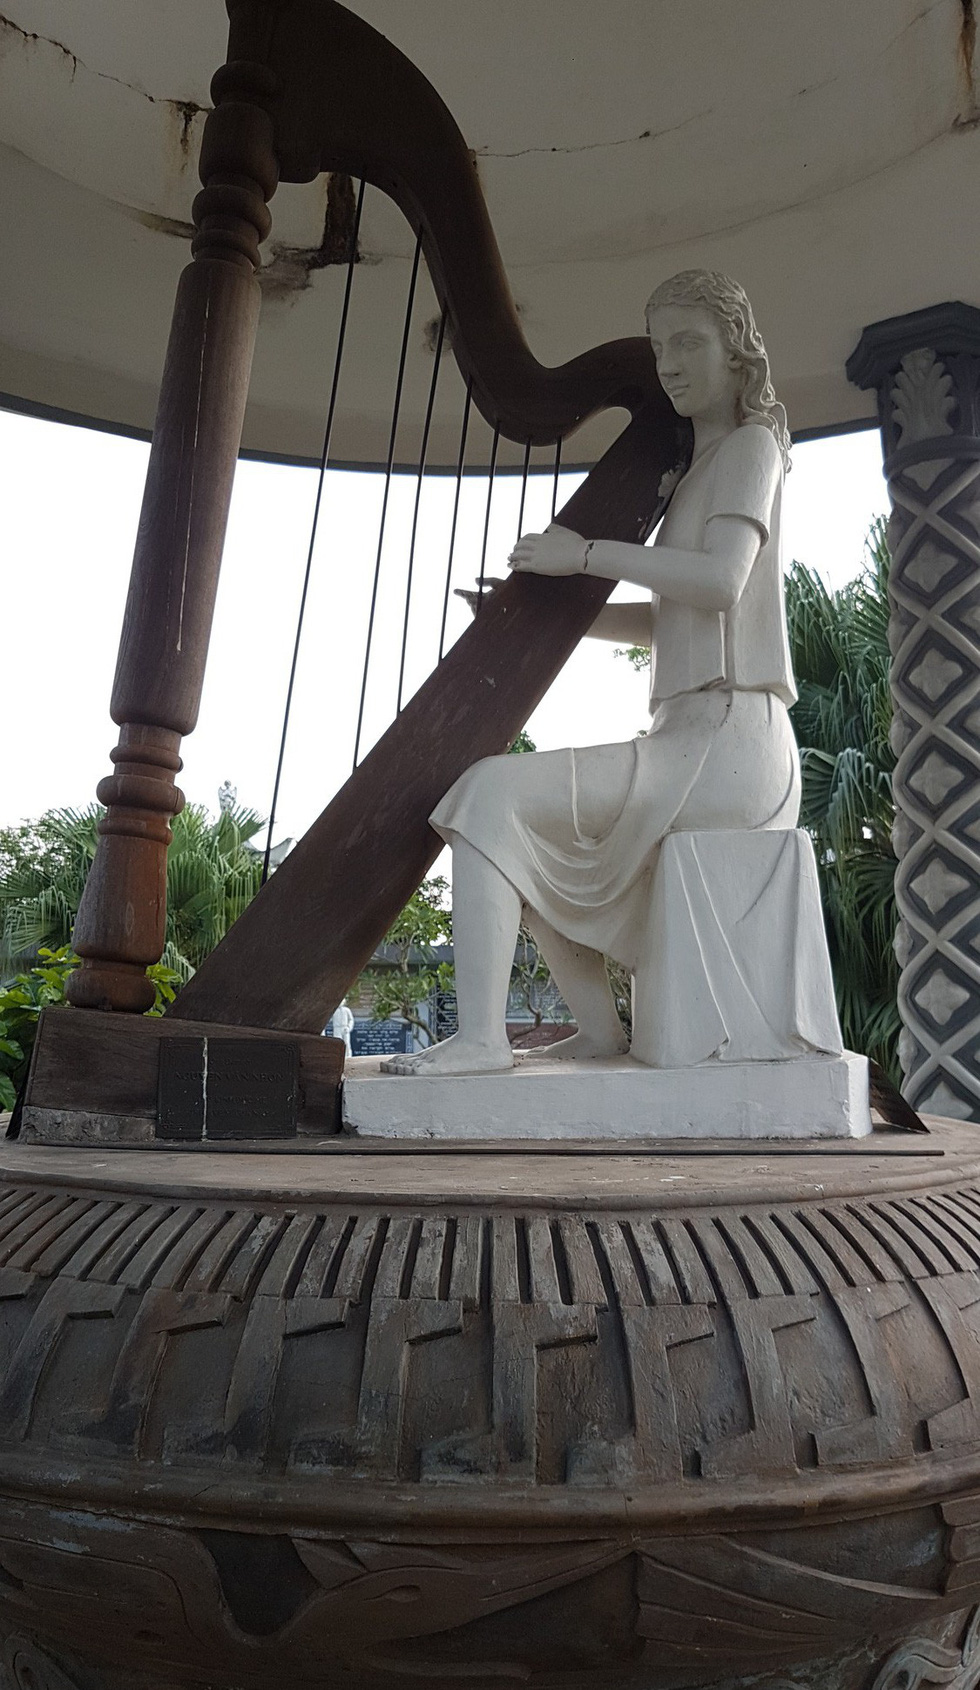 The statue of a woman playing a harp at the Bui Chu Diocese in Nam Dinh Province, northern Vietnam. Photo: Thai Loc / Tuoi Tre